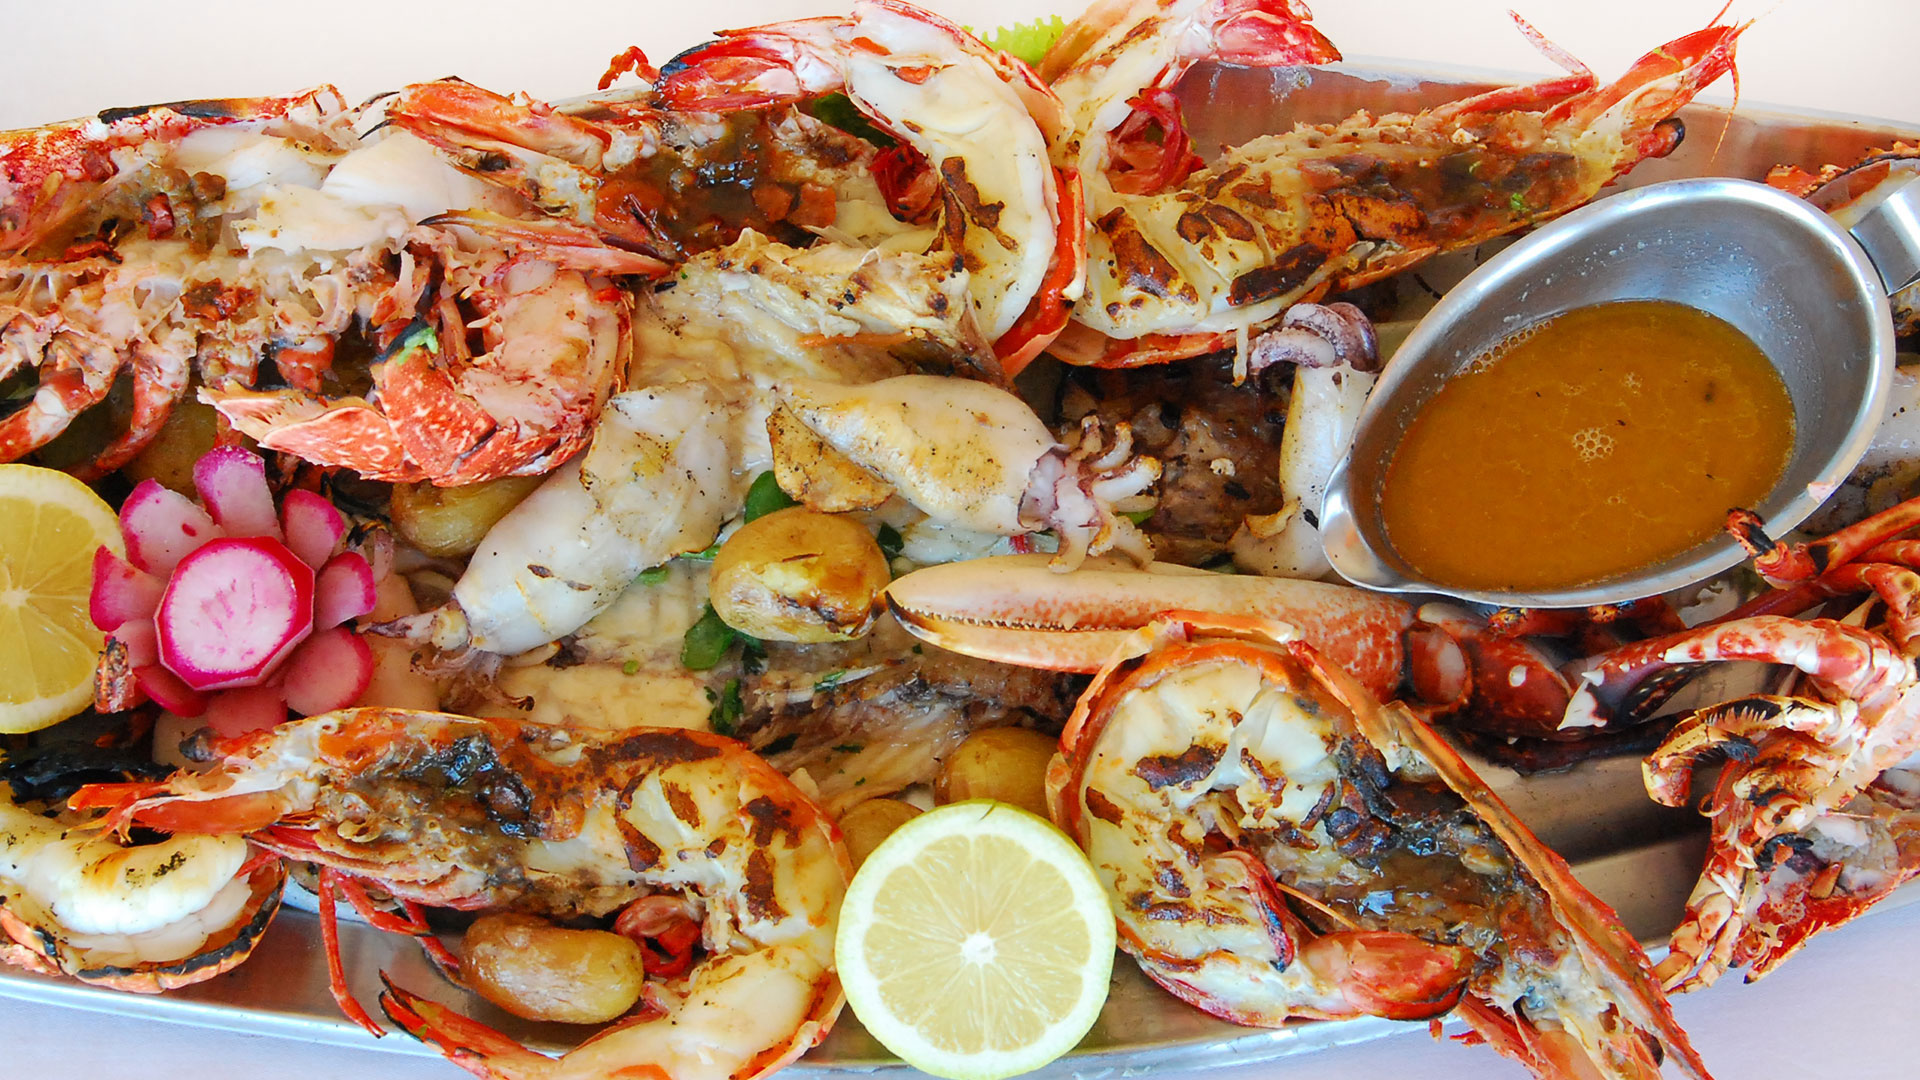 Our special seafood parillada